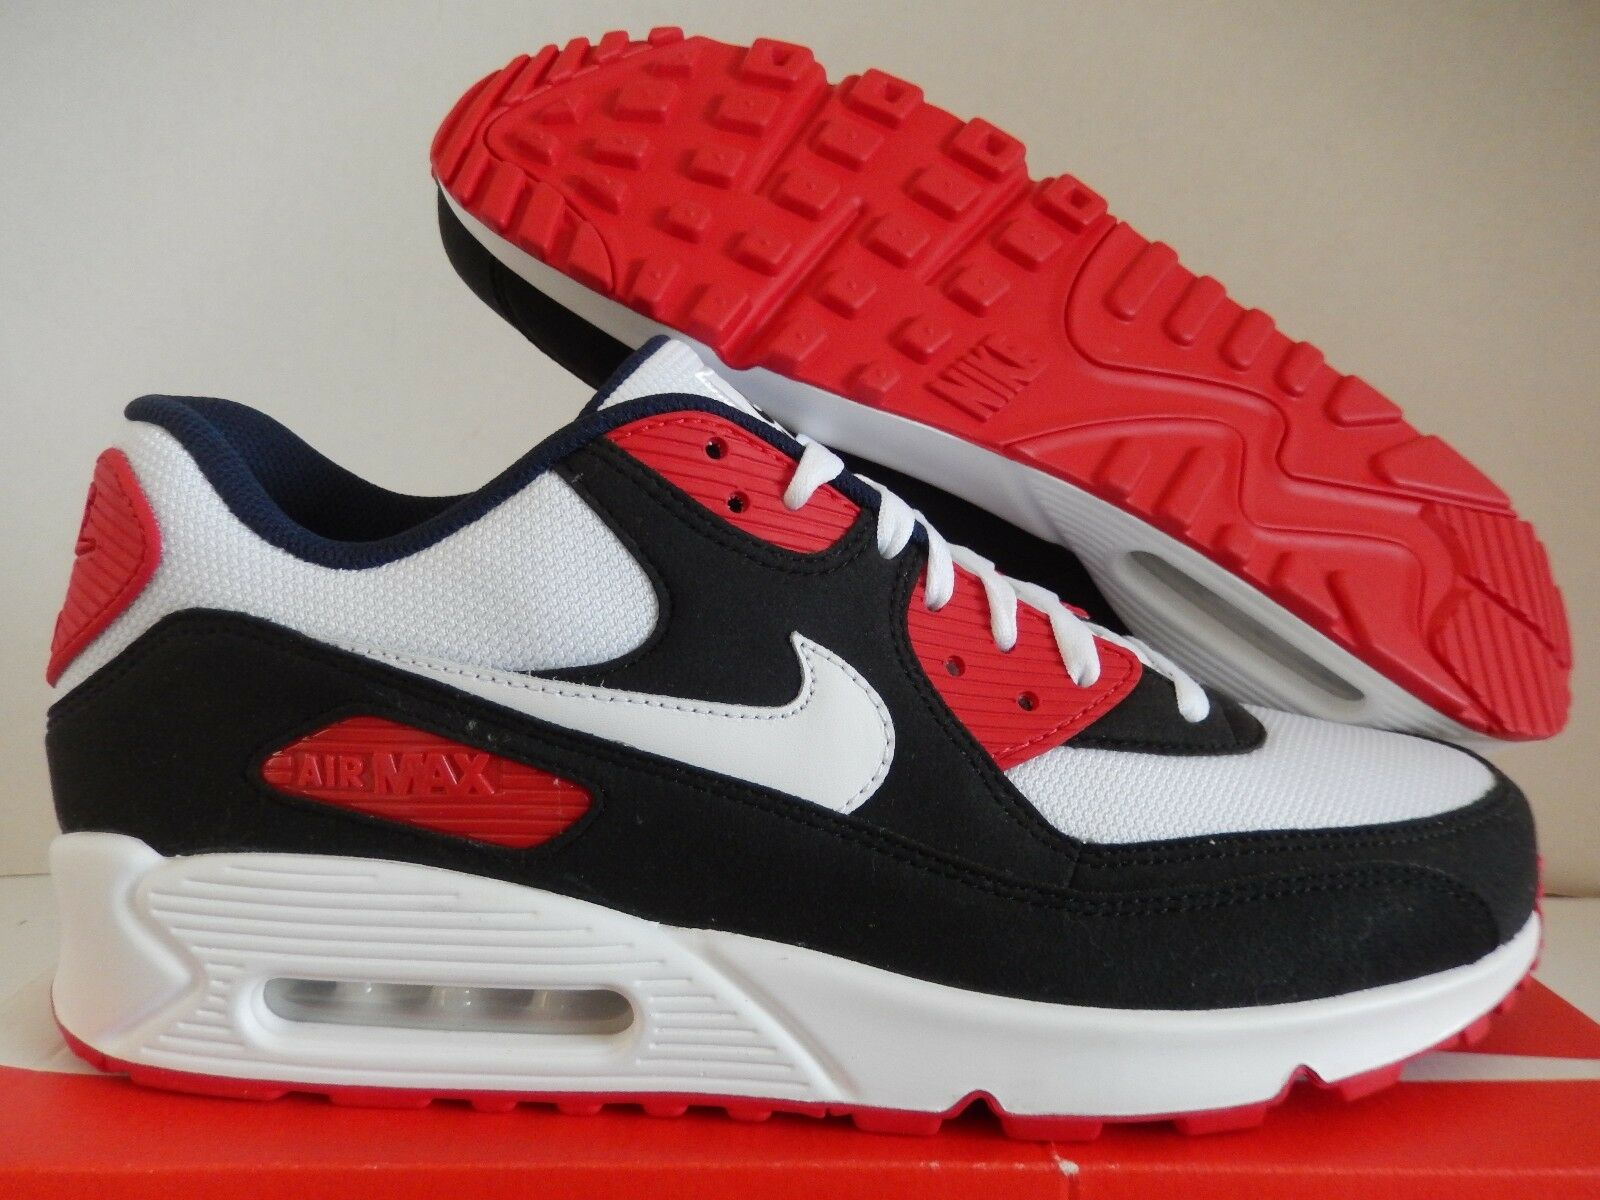 NIKE AIR MAX 90 ID BLACK-WHITE-RED-NAVY BLUE SZ 12.5